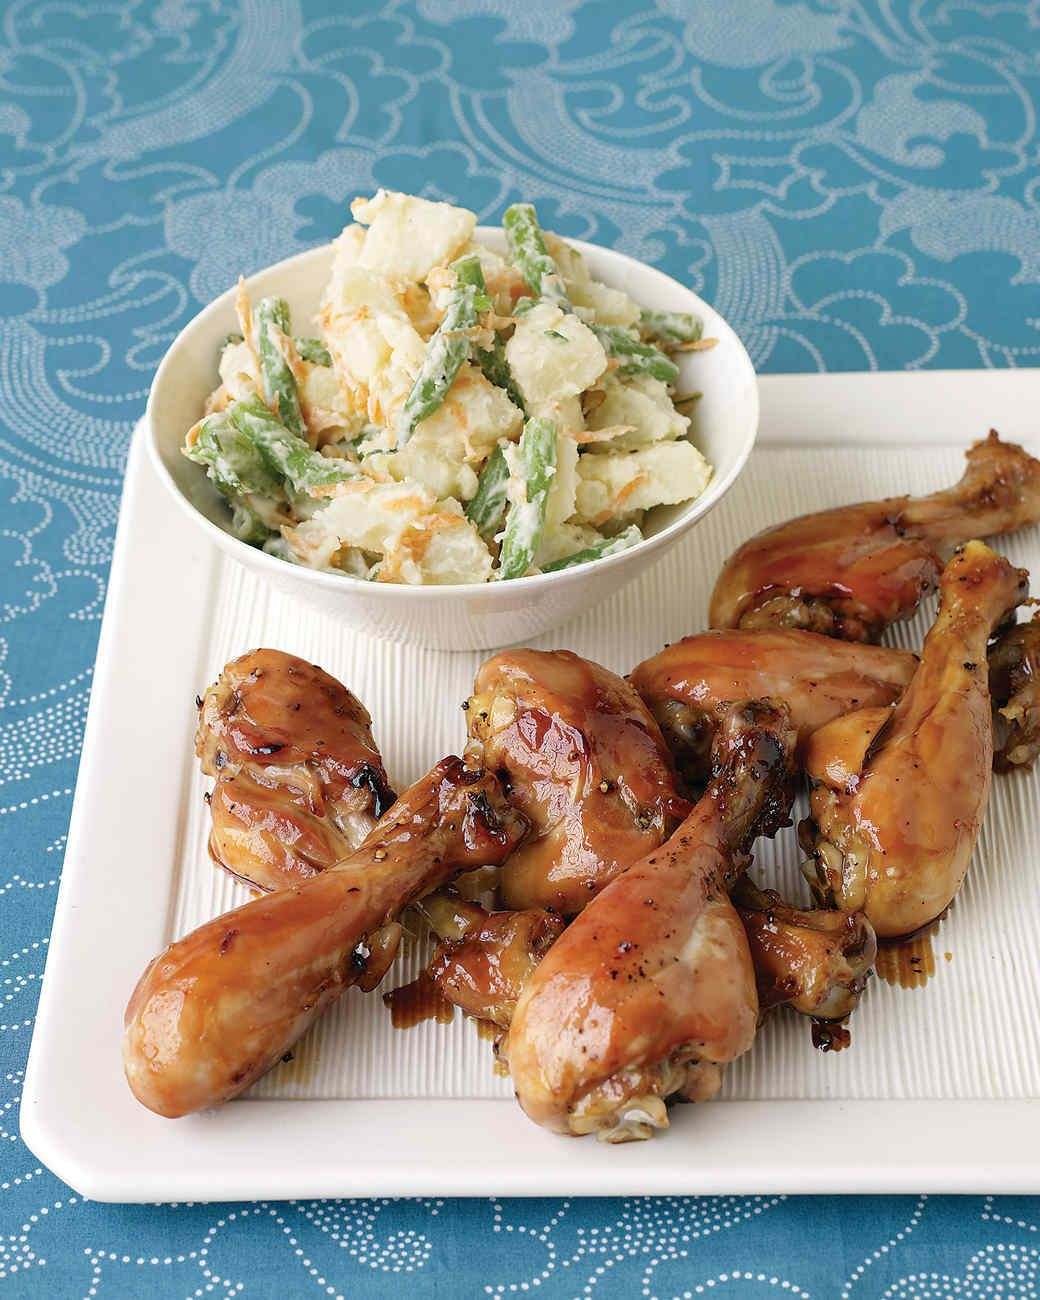 Honey, soy sauce, and a splash of water make a simple sticky glaze. Lining the pan with aluminum foil eases after-dinner clean-up. Serve these lightly sweetened drumsticks with our Warm Potato-Veggie Salad for a delicious family-friendly meal.